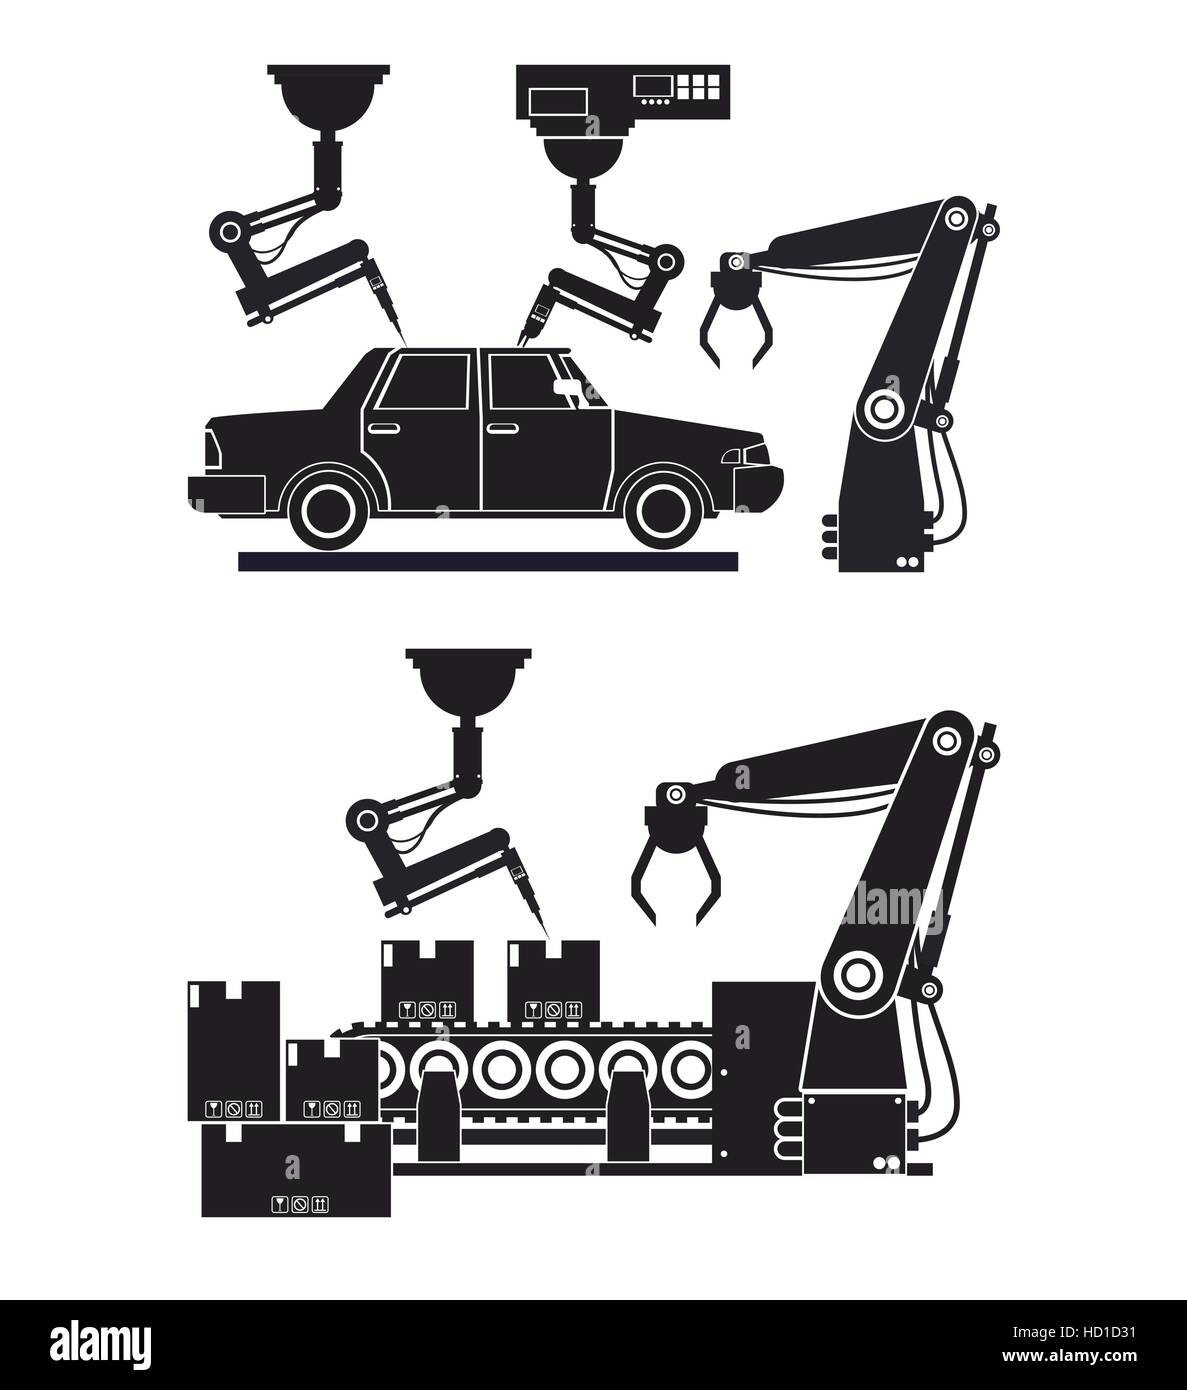 silhouette automated production line robotic factory banner - Stock Image